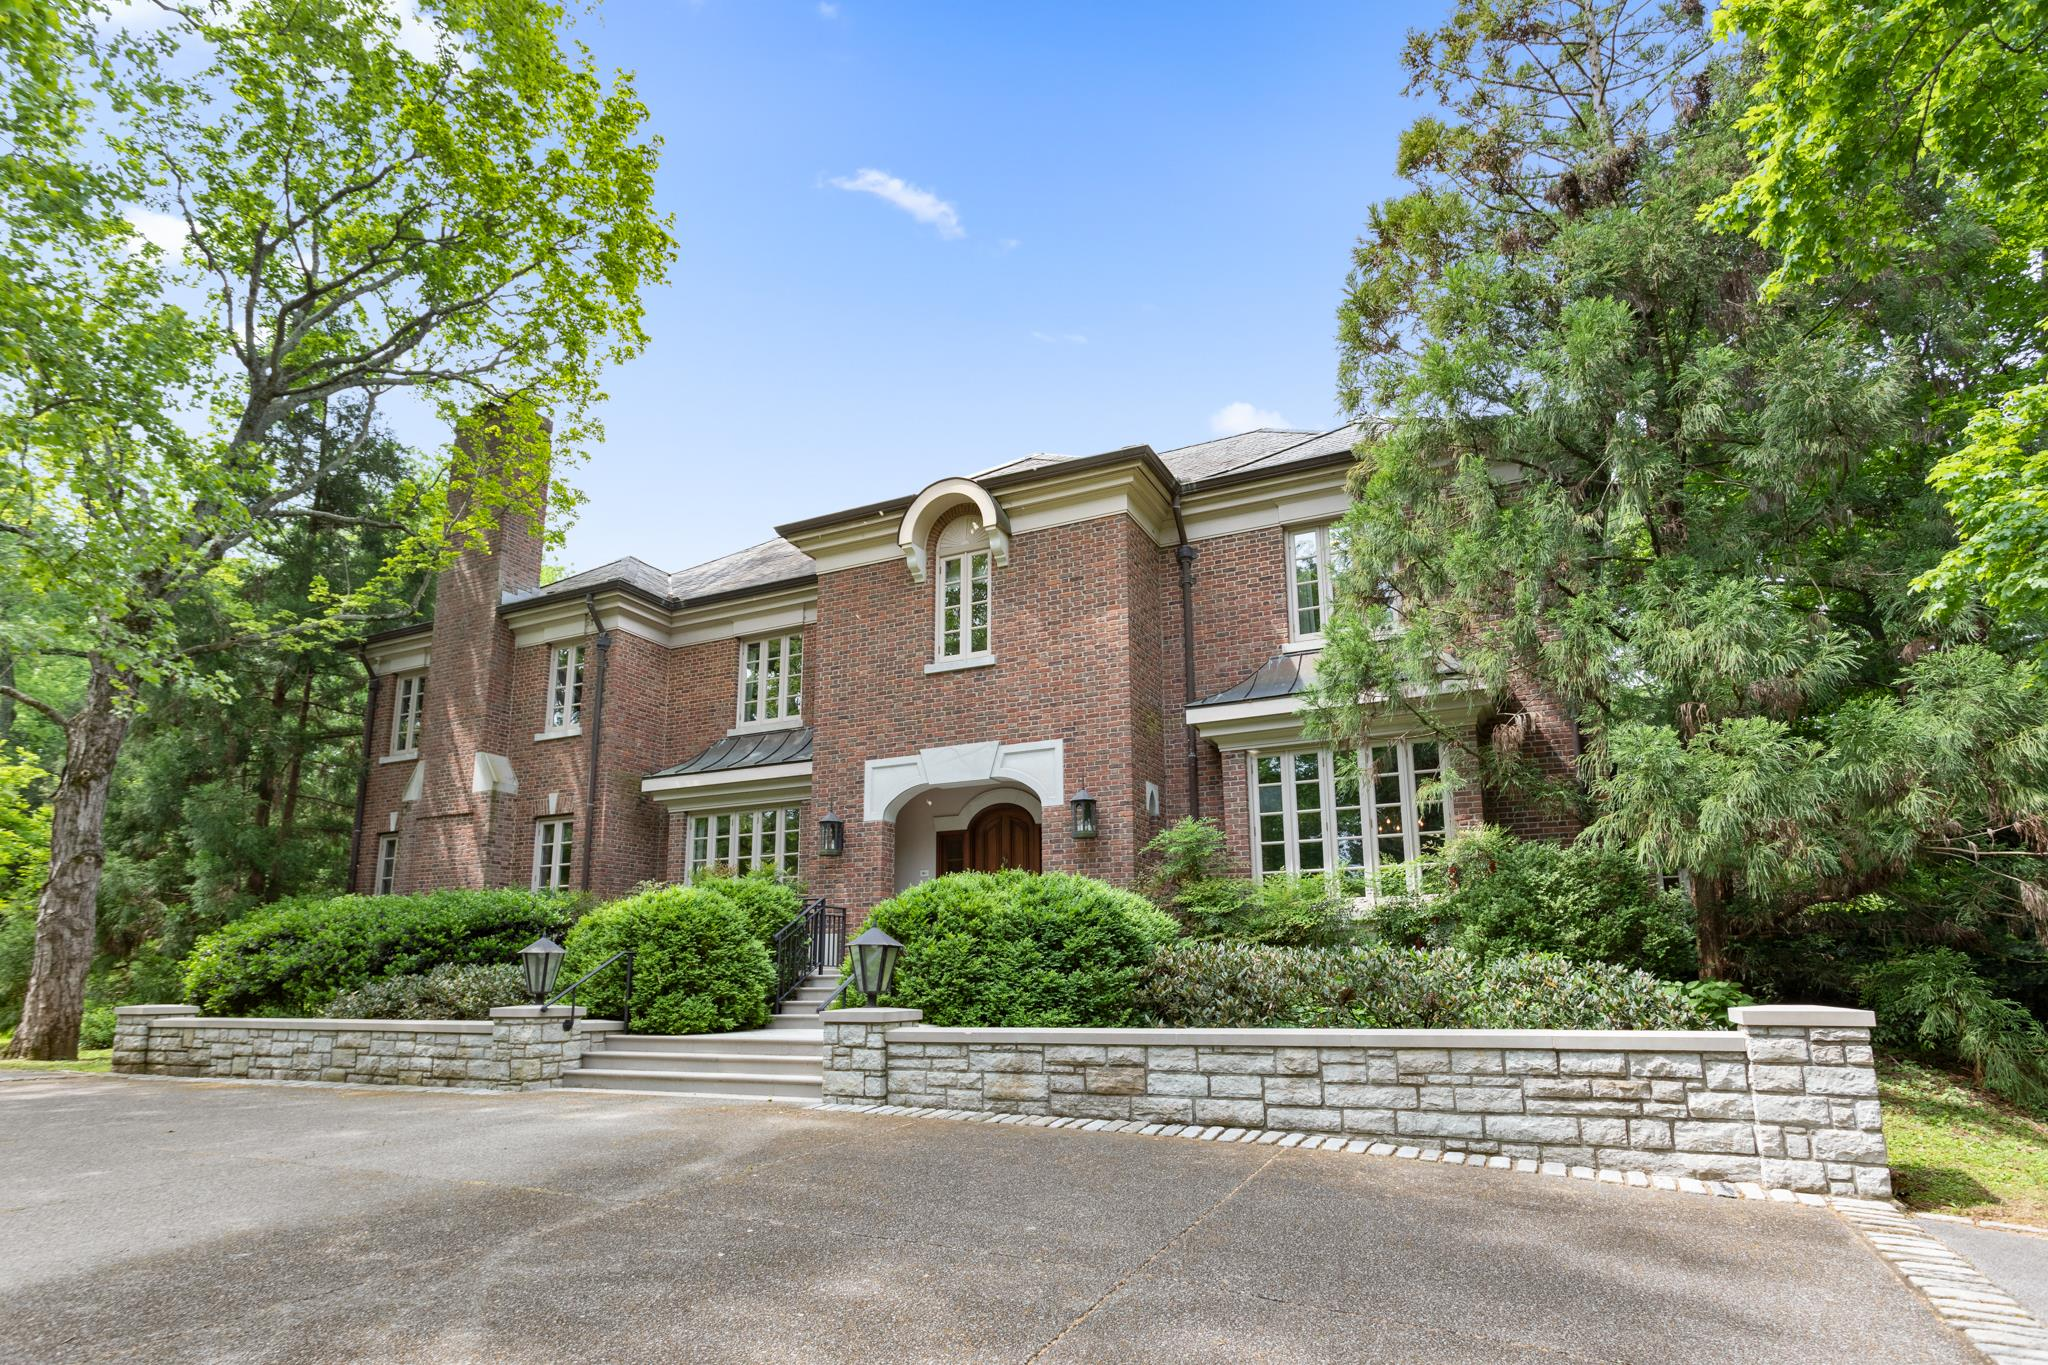 311 Sunnyside Dr, Nashville, TN 37205 - Nashville, TN real estate listing